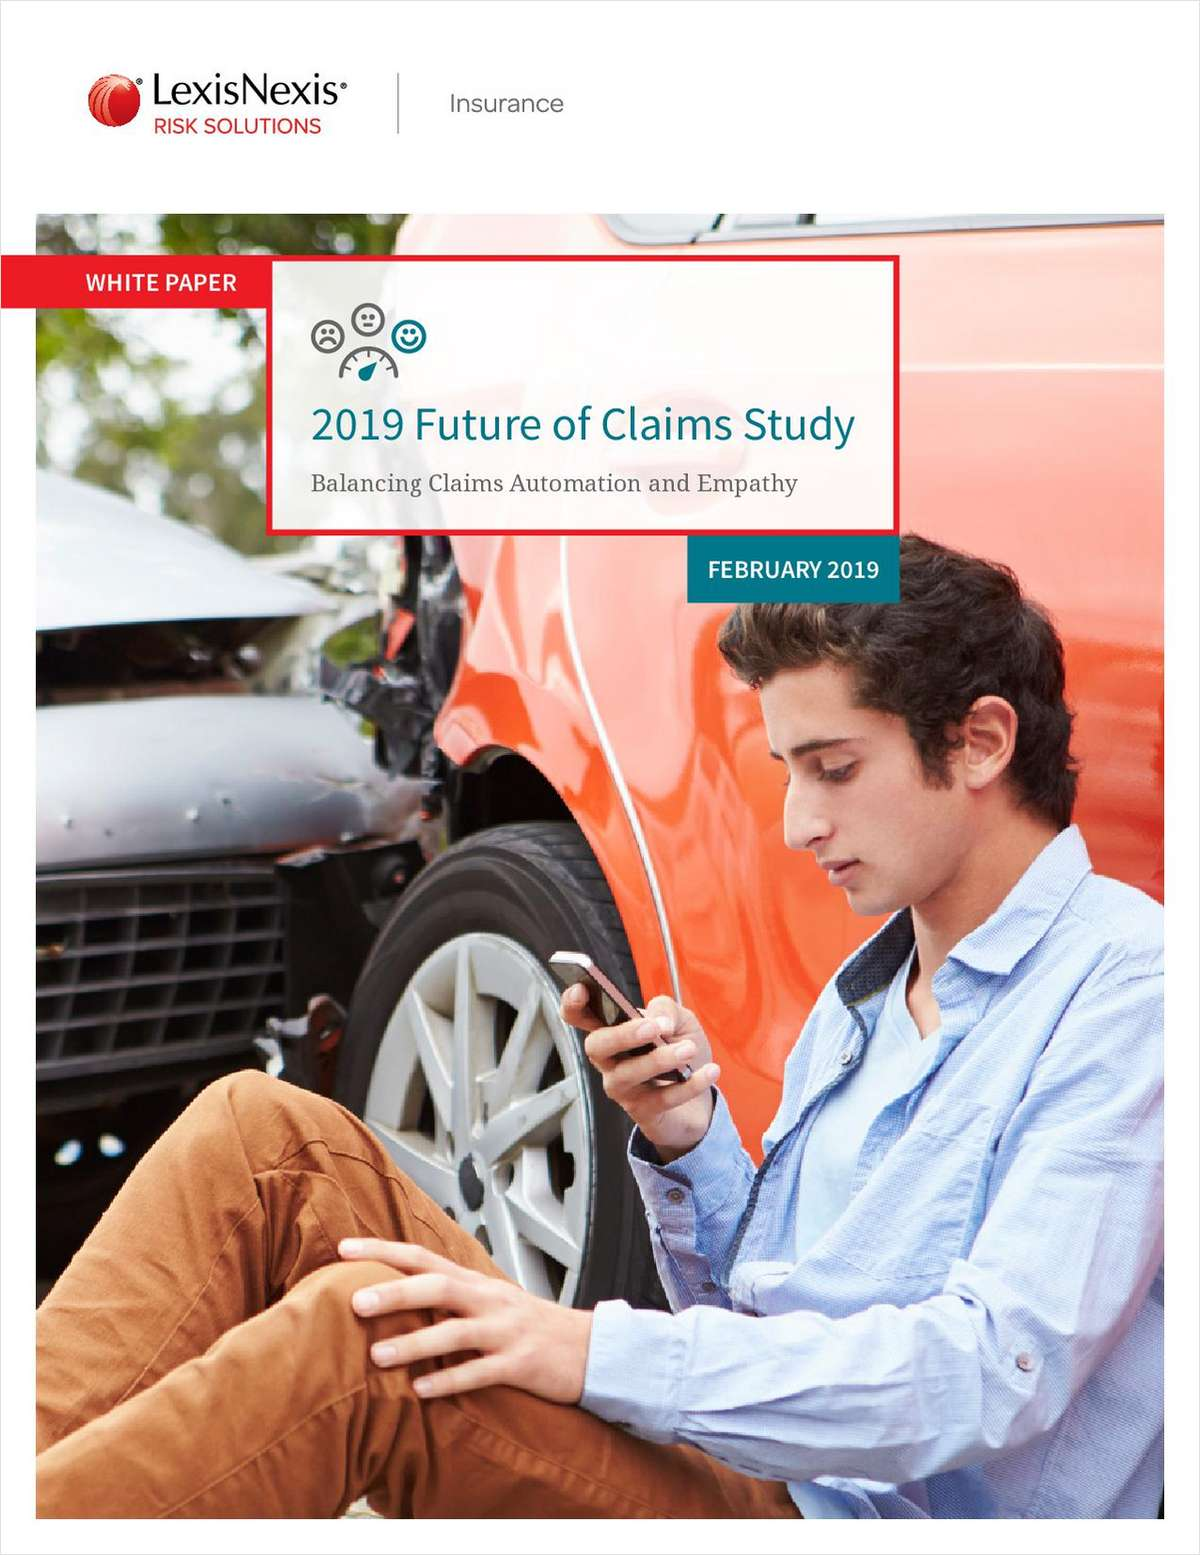 2019 Future of Claims Study: Balancing Automation and Empathy